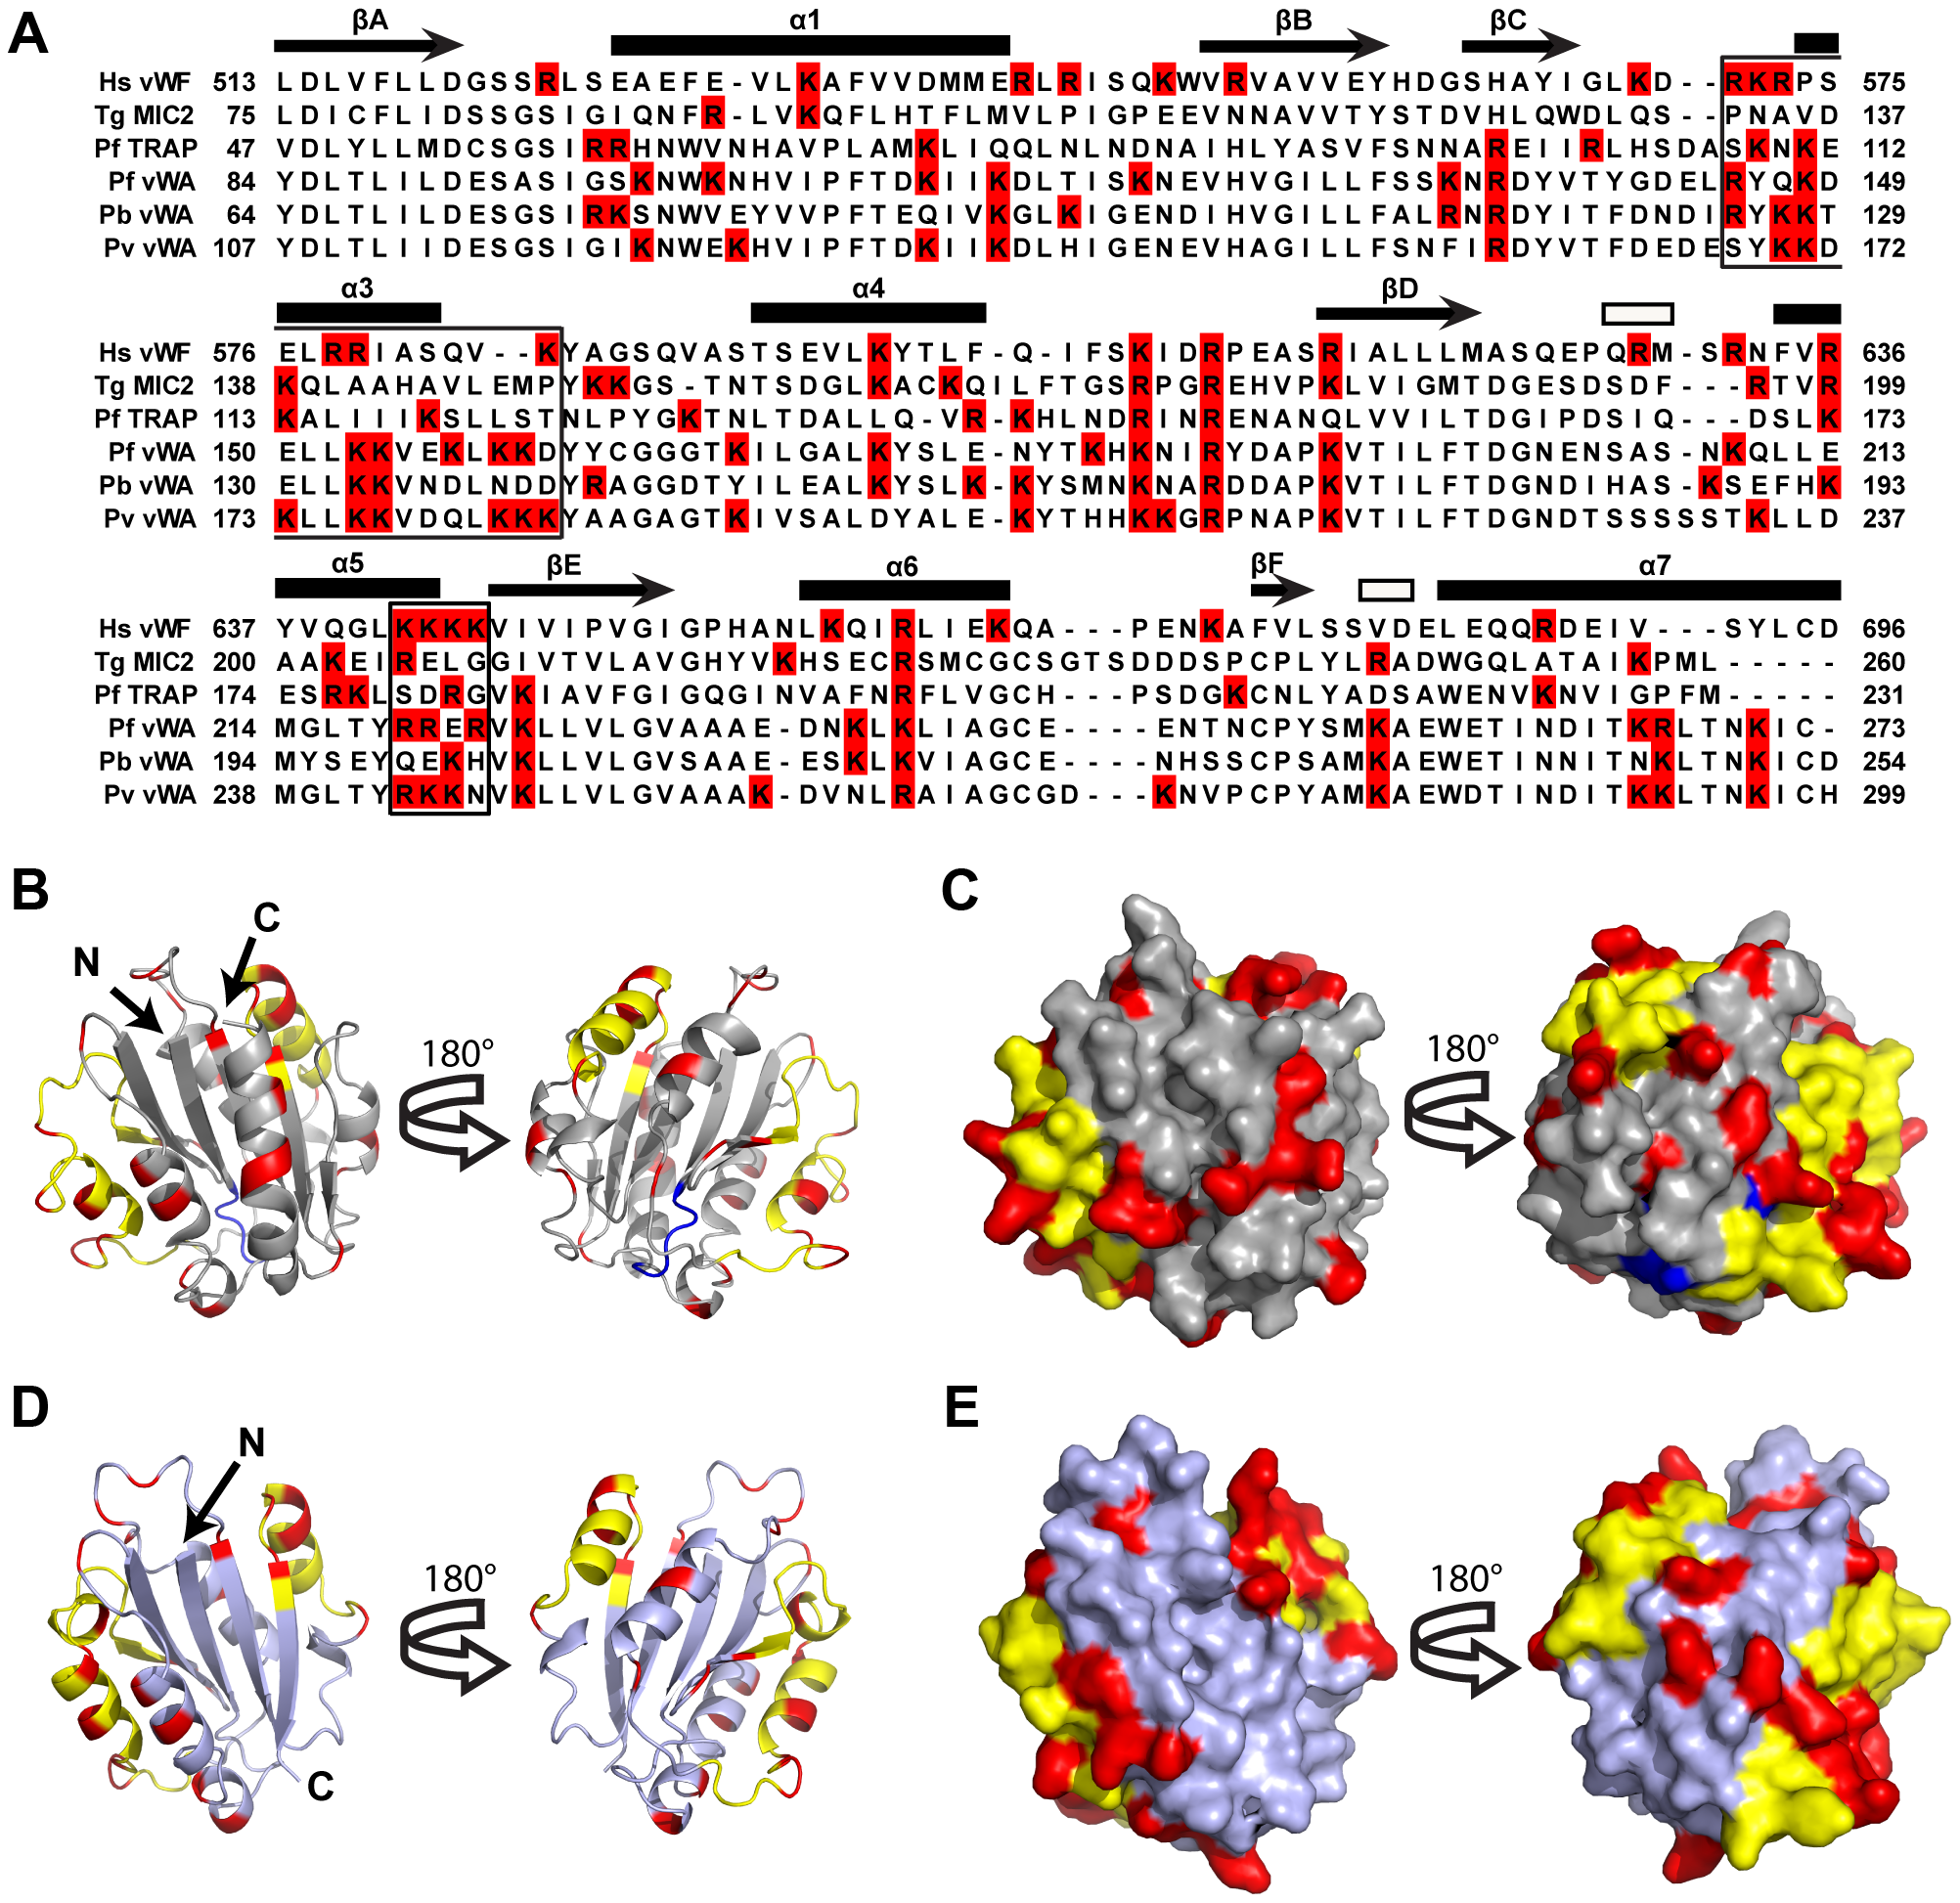 A Homology model of <i>Plasmodium falciparum</i> CTRP provides insight into the potential VS1 binding motifs.